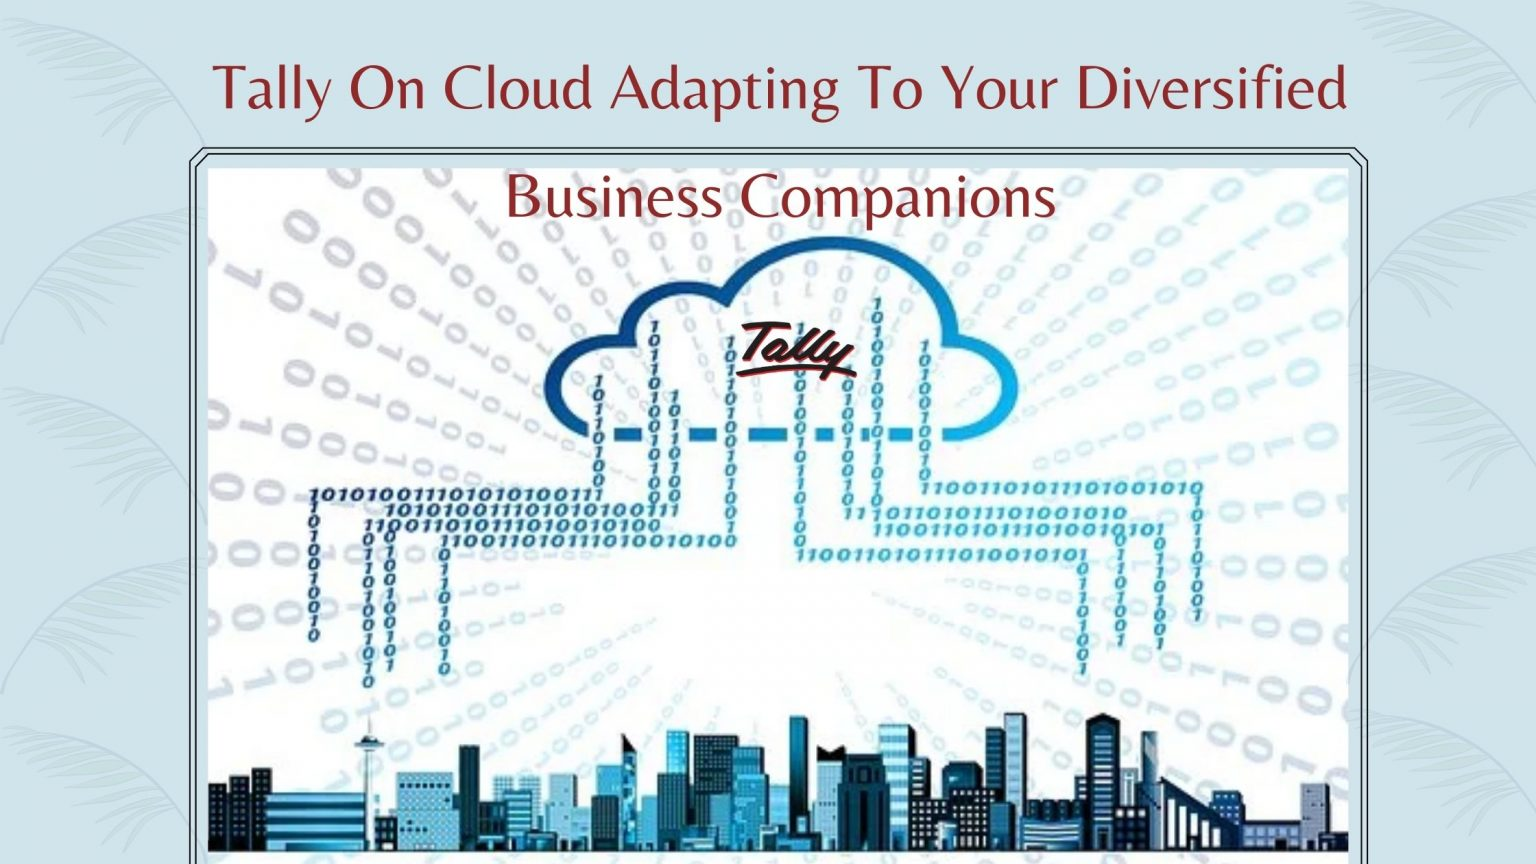 Tally On Cloud Adapting To Your Diversified Business Companions